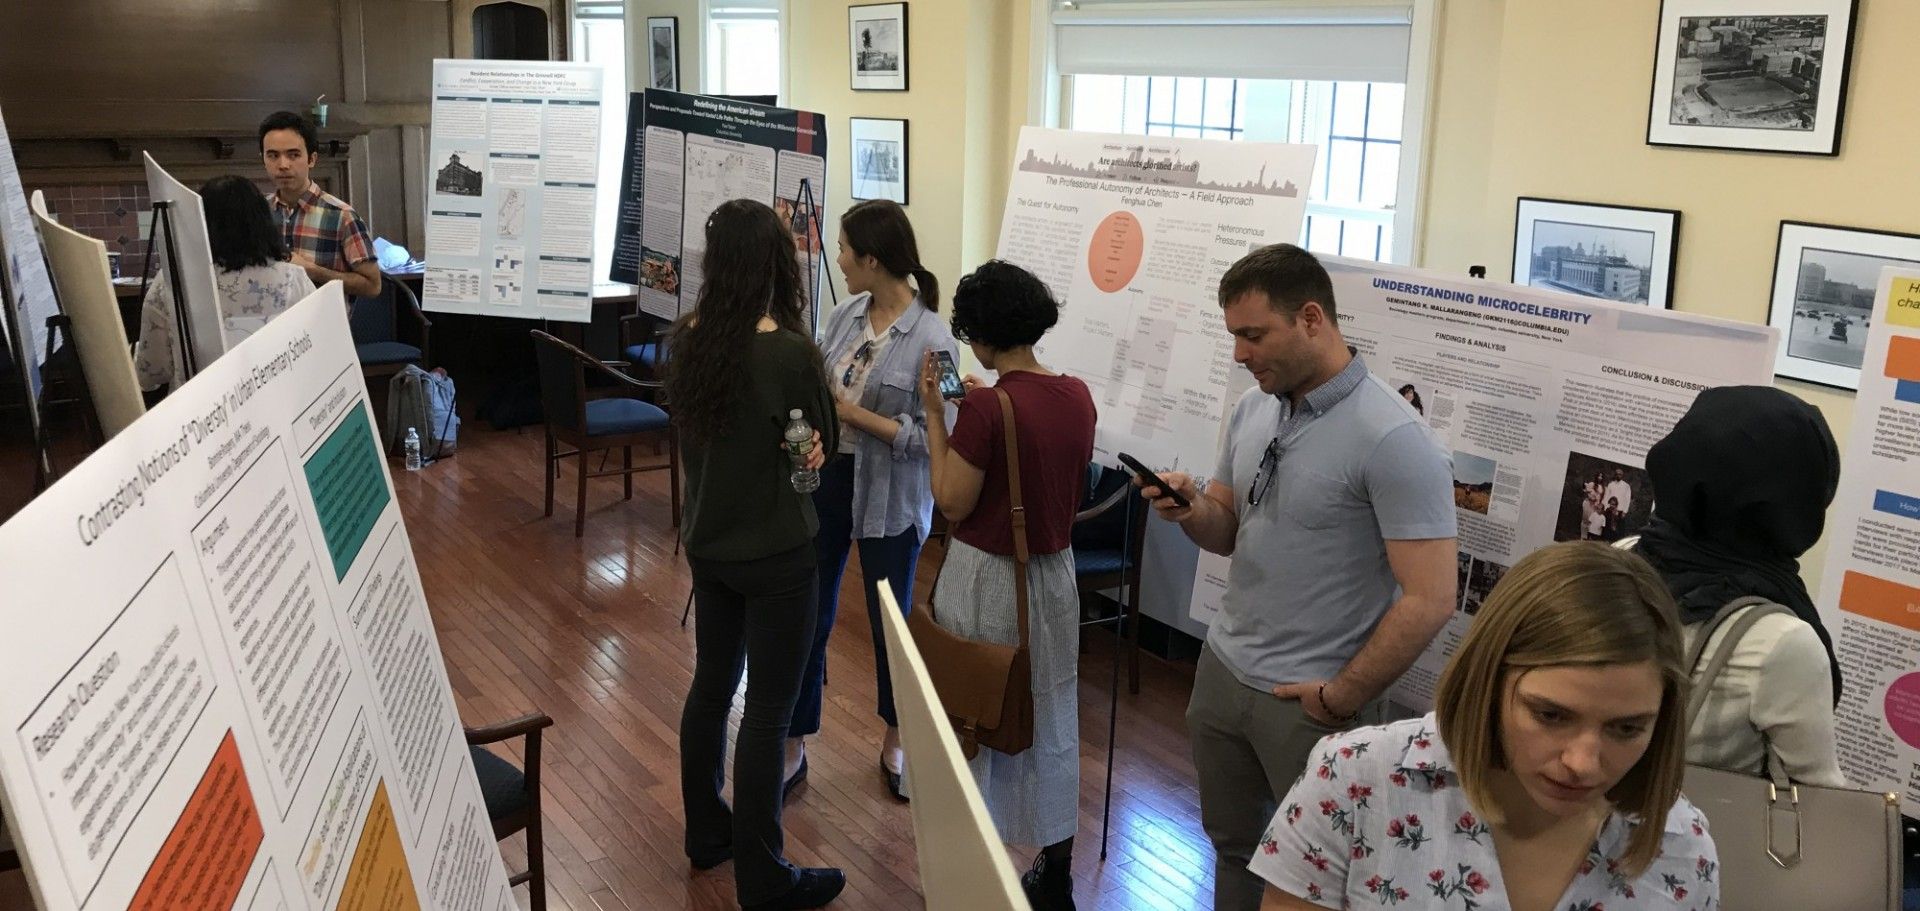 Graduate Student Research Poster Session